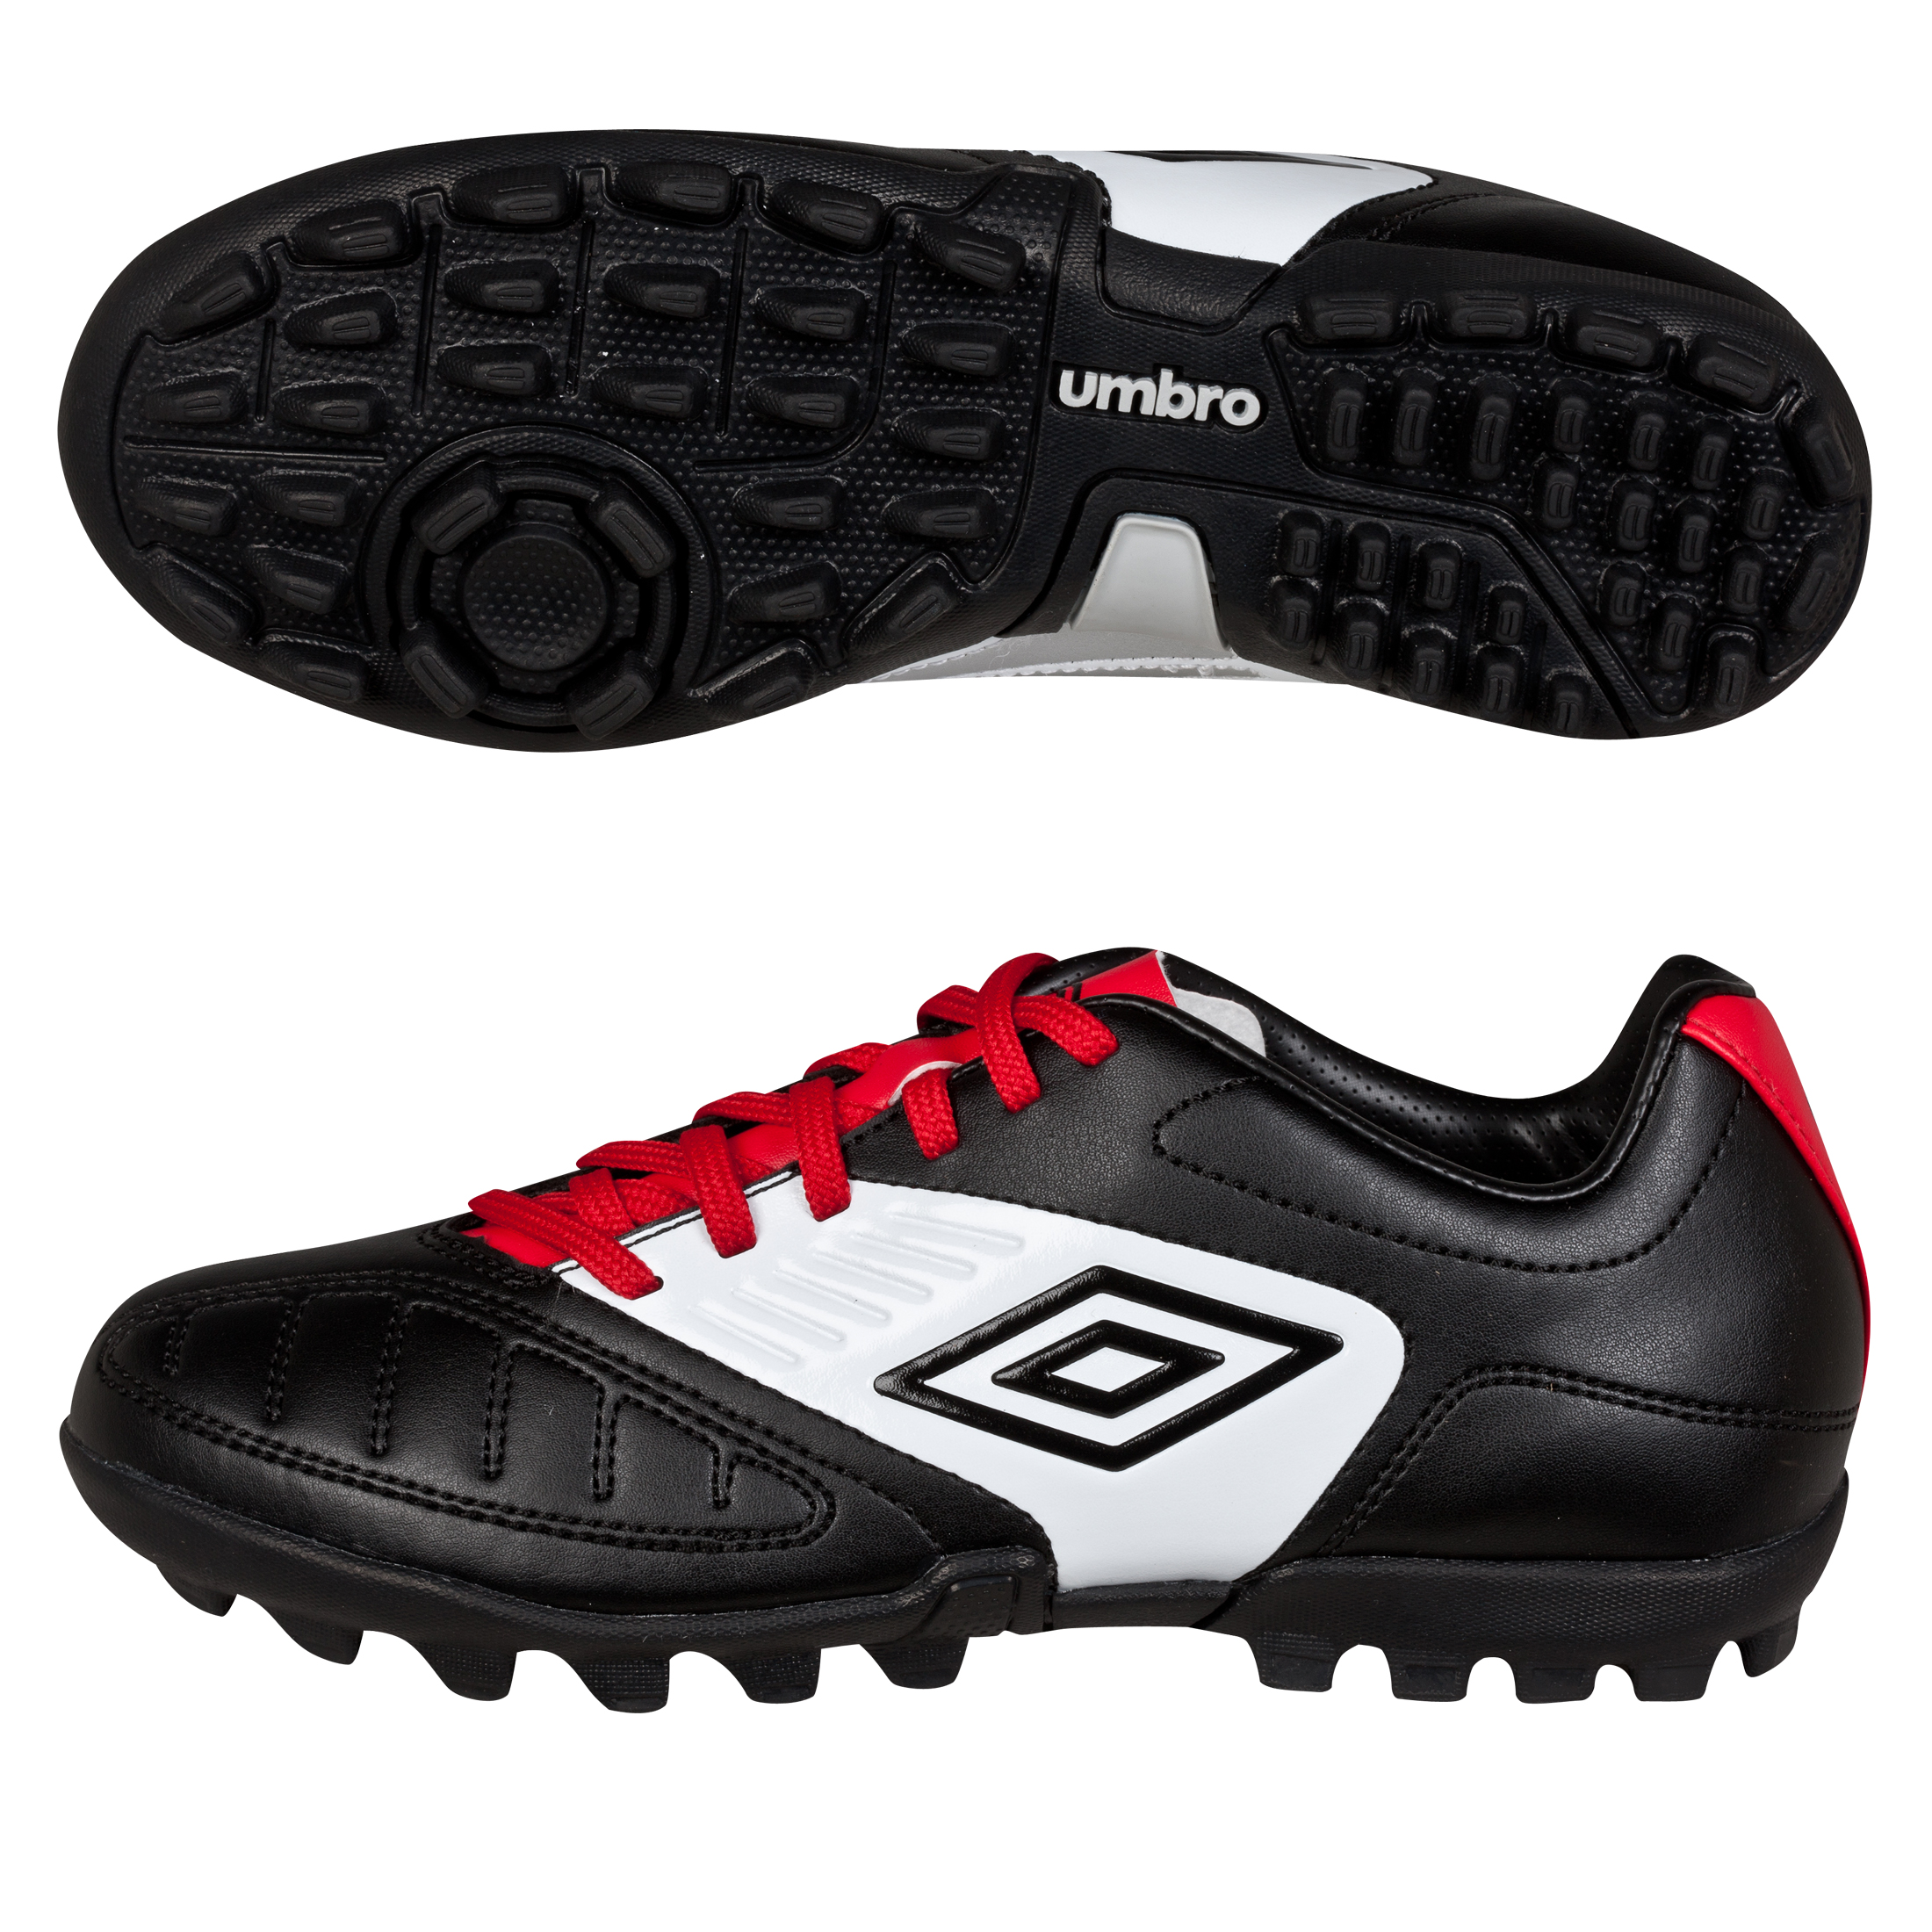 Umbro Geometra Cup Astroturf Trainers - Black/White/True Red - Kids